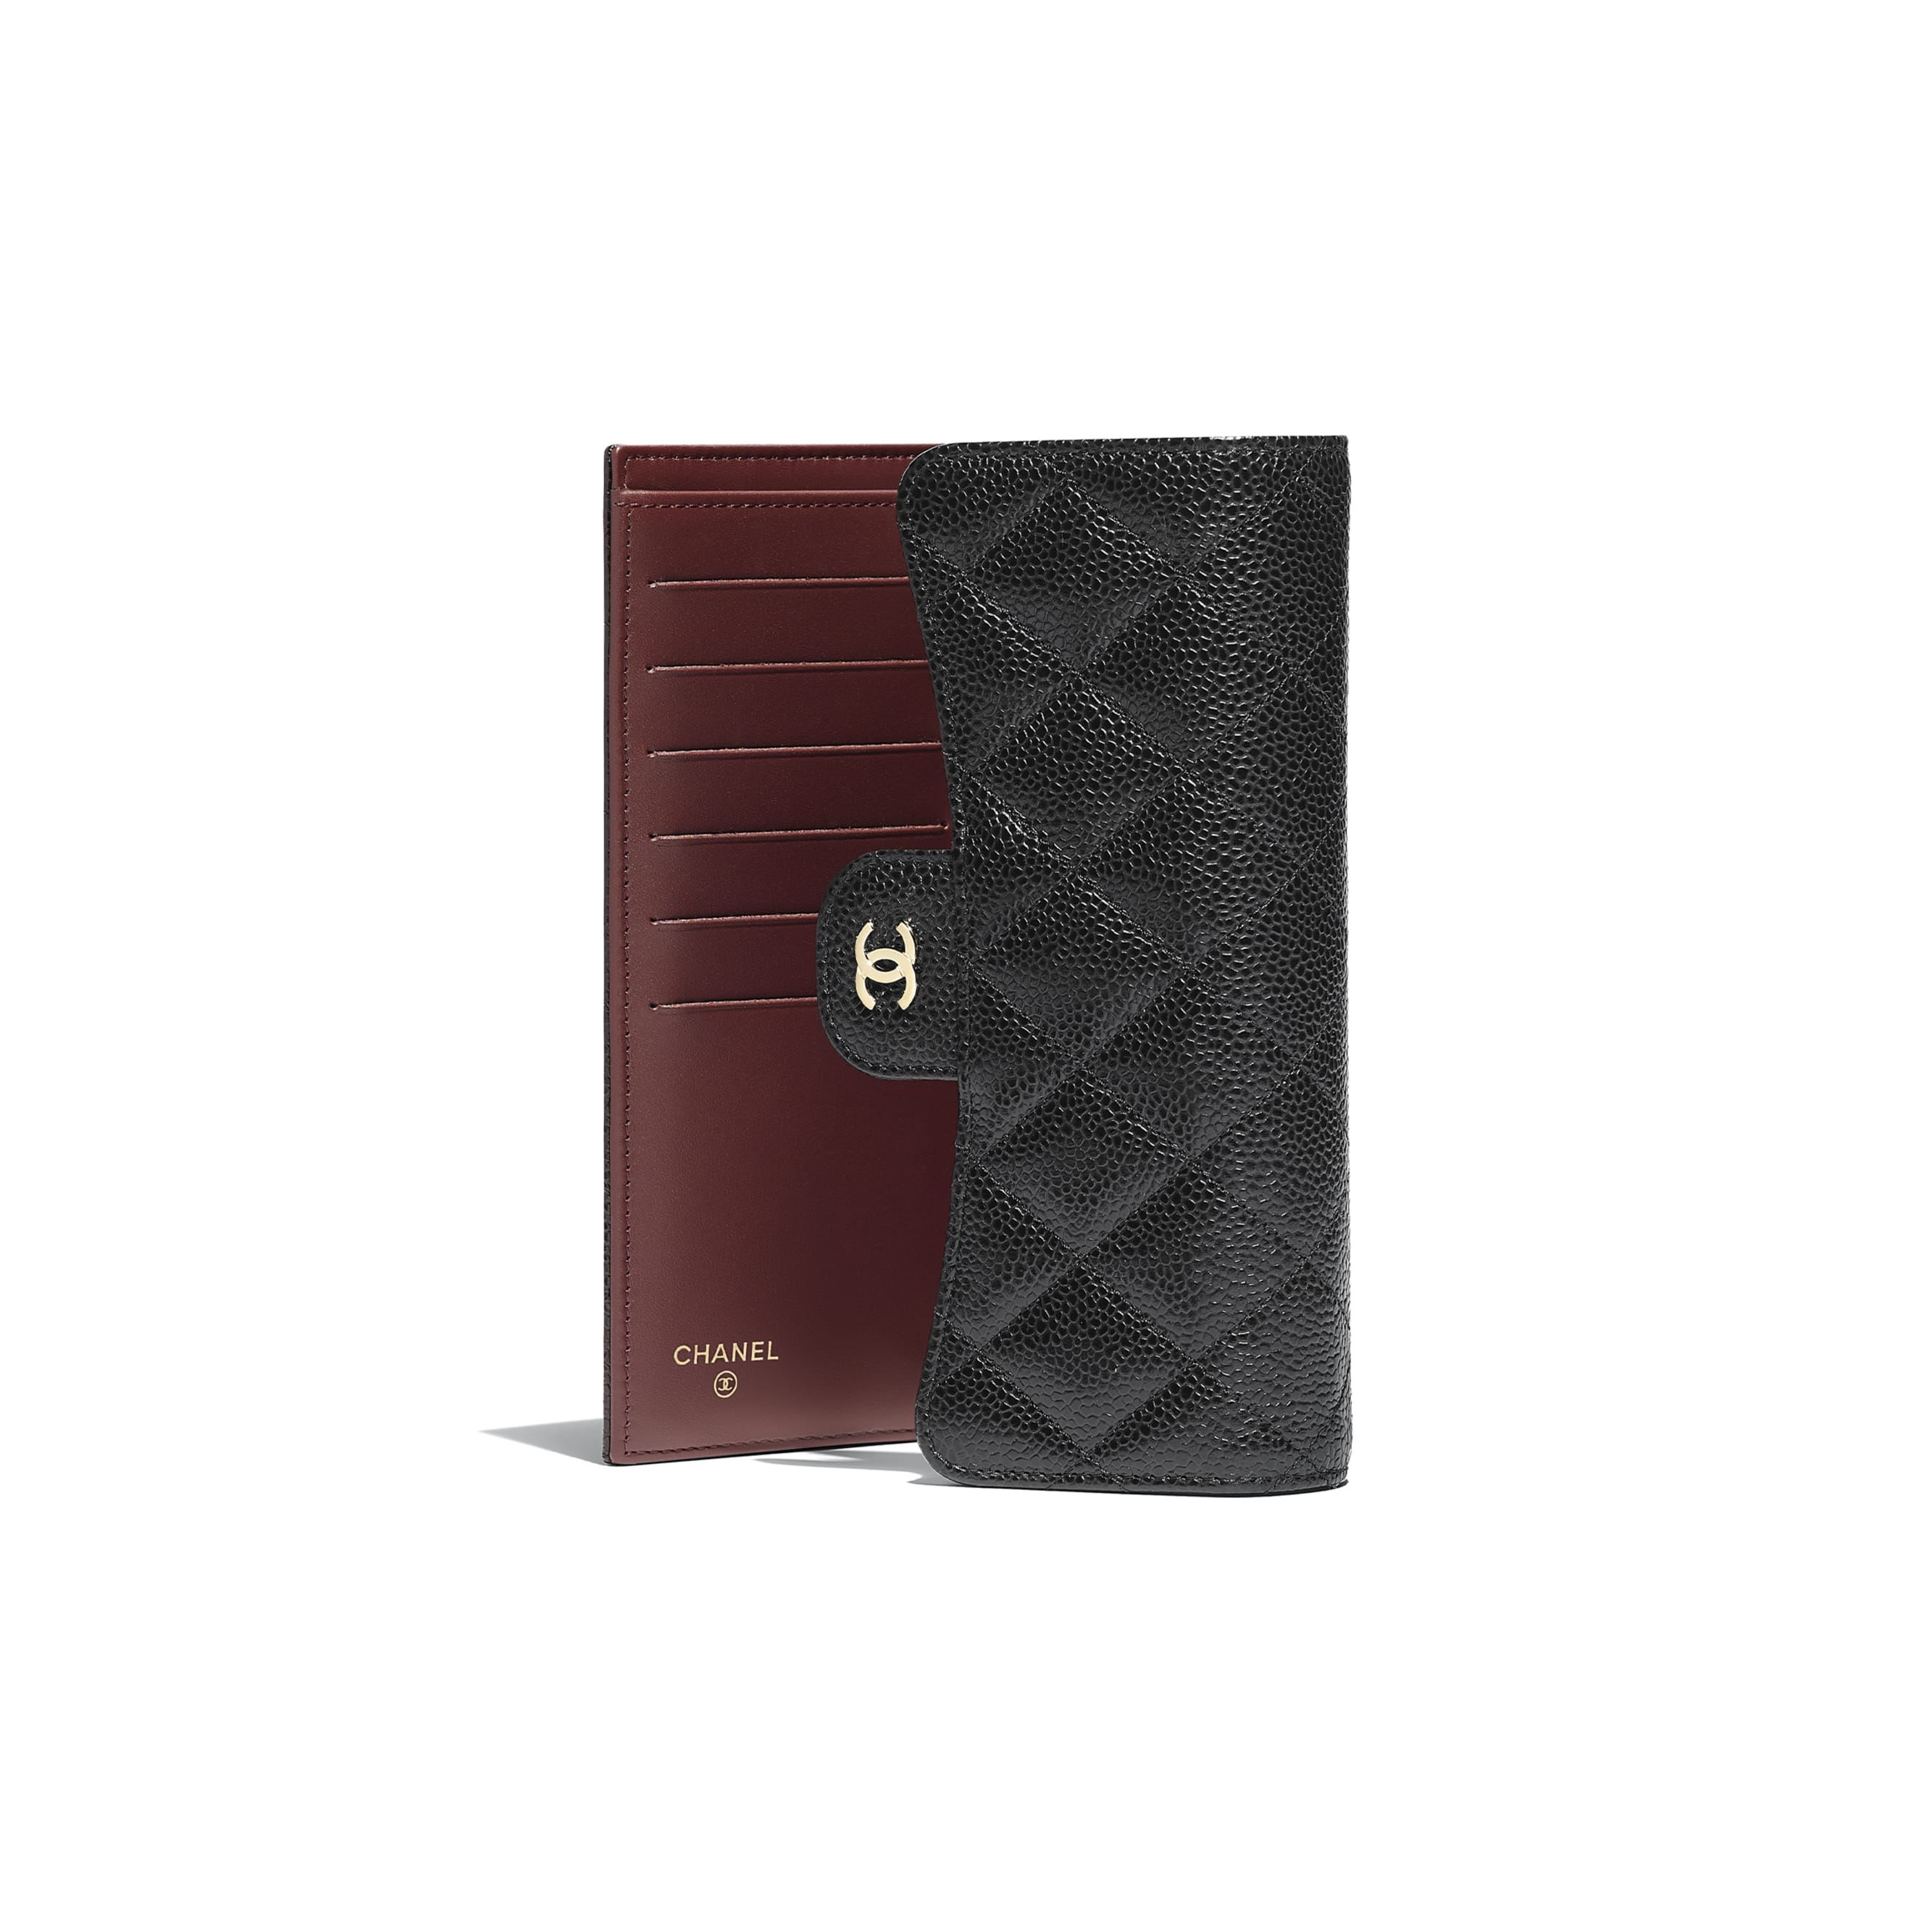 Classic Flap Wallet - Black - Grained Calfskin & Gold-Tone Metal - CHANEL - Other view - see standard sized version